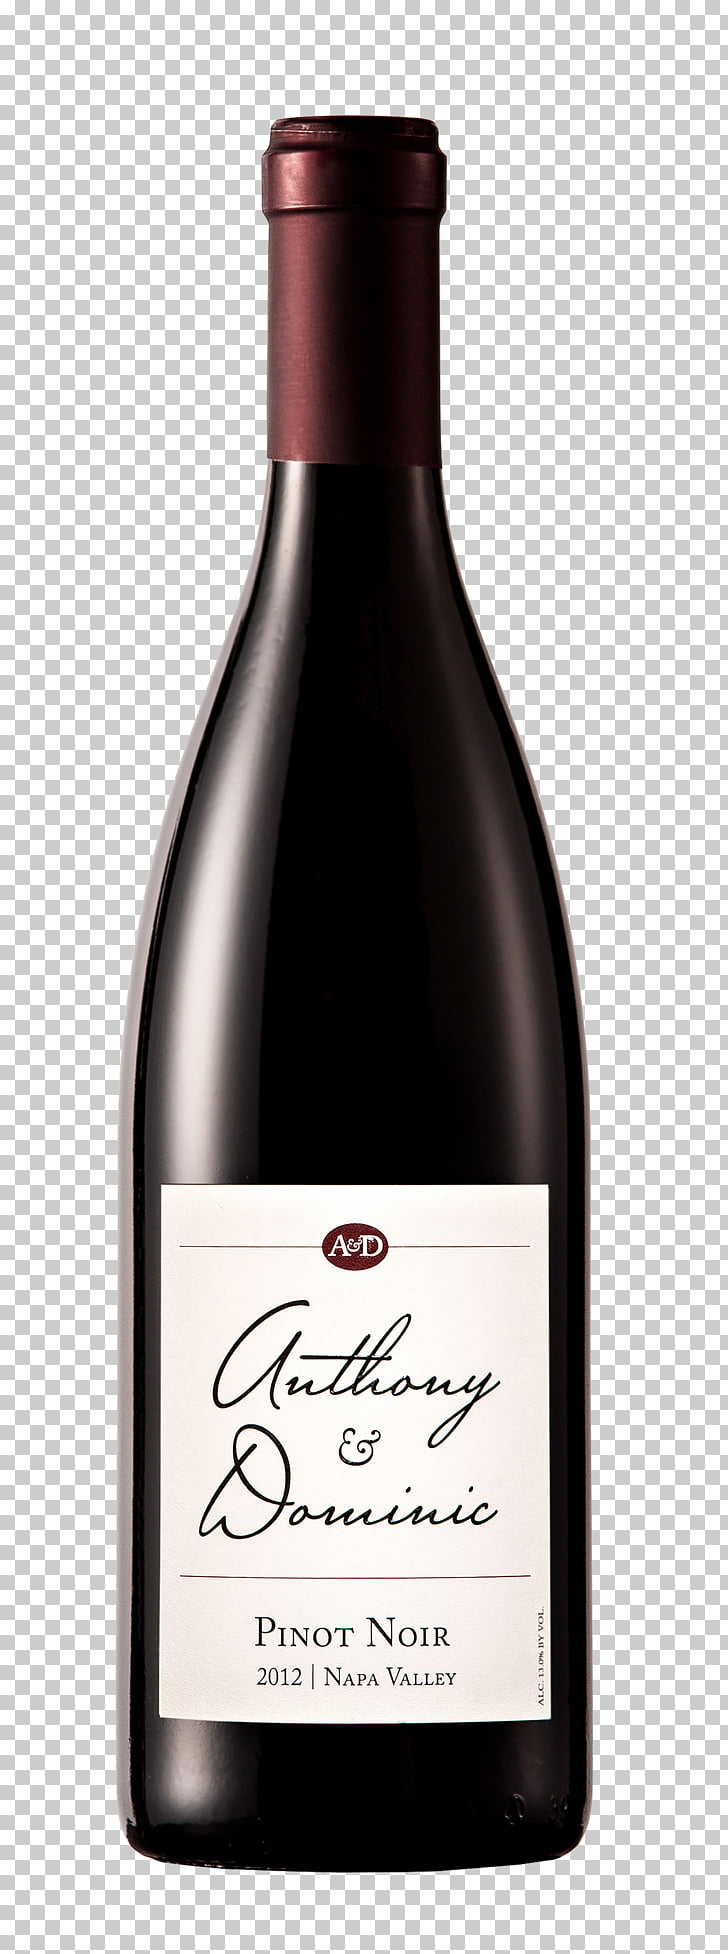 medium resolution of red wine martin ray winery pinot noir shiraz pinot noir png clipart